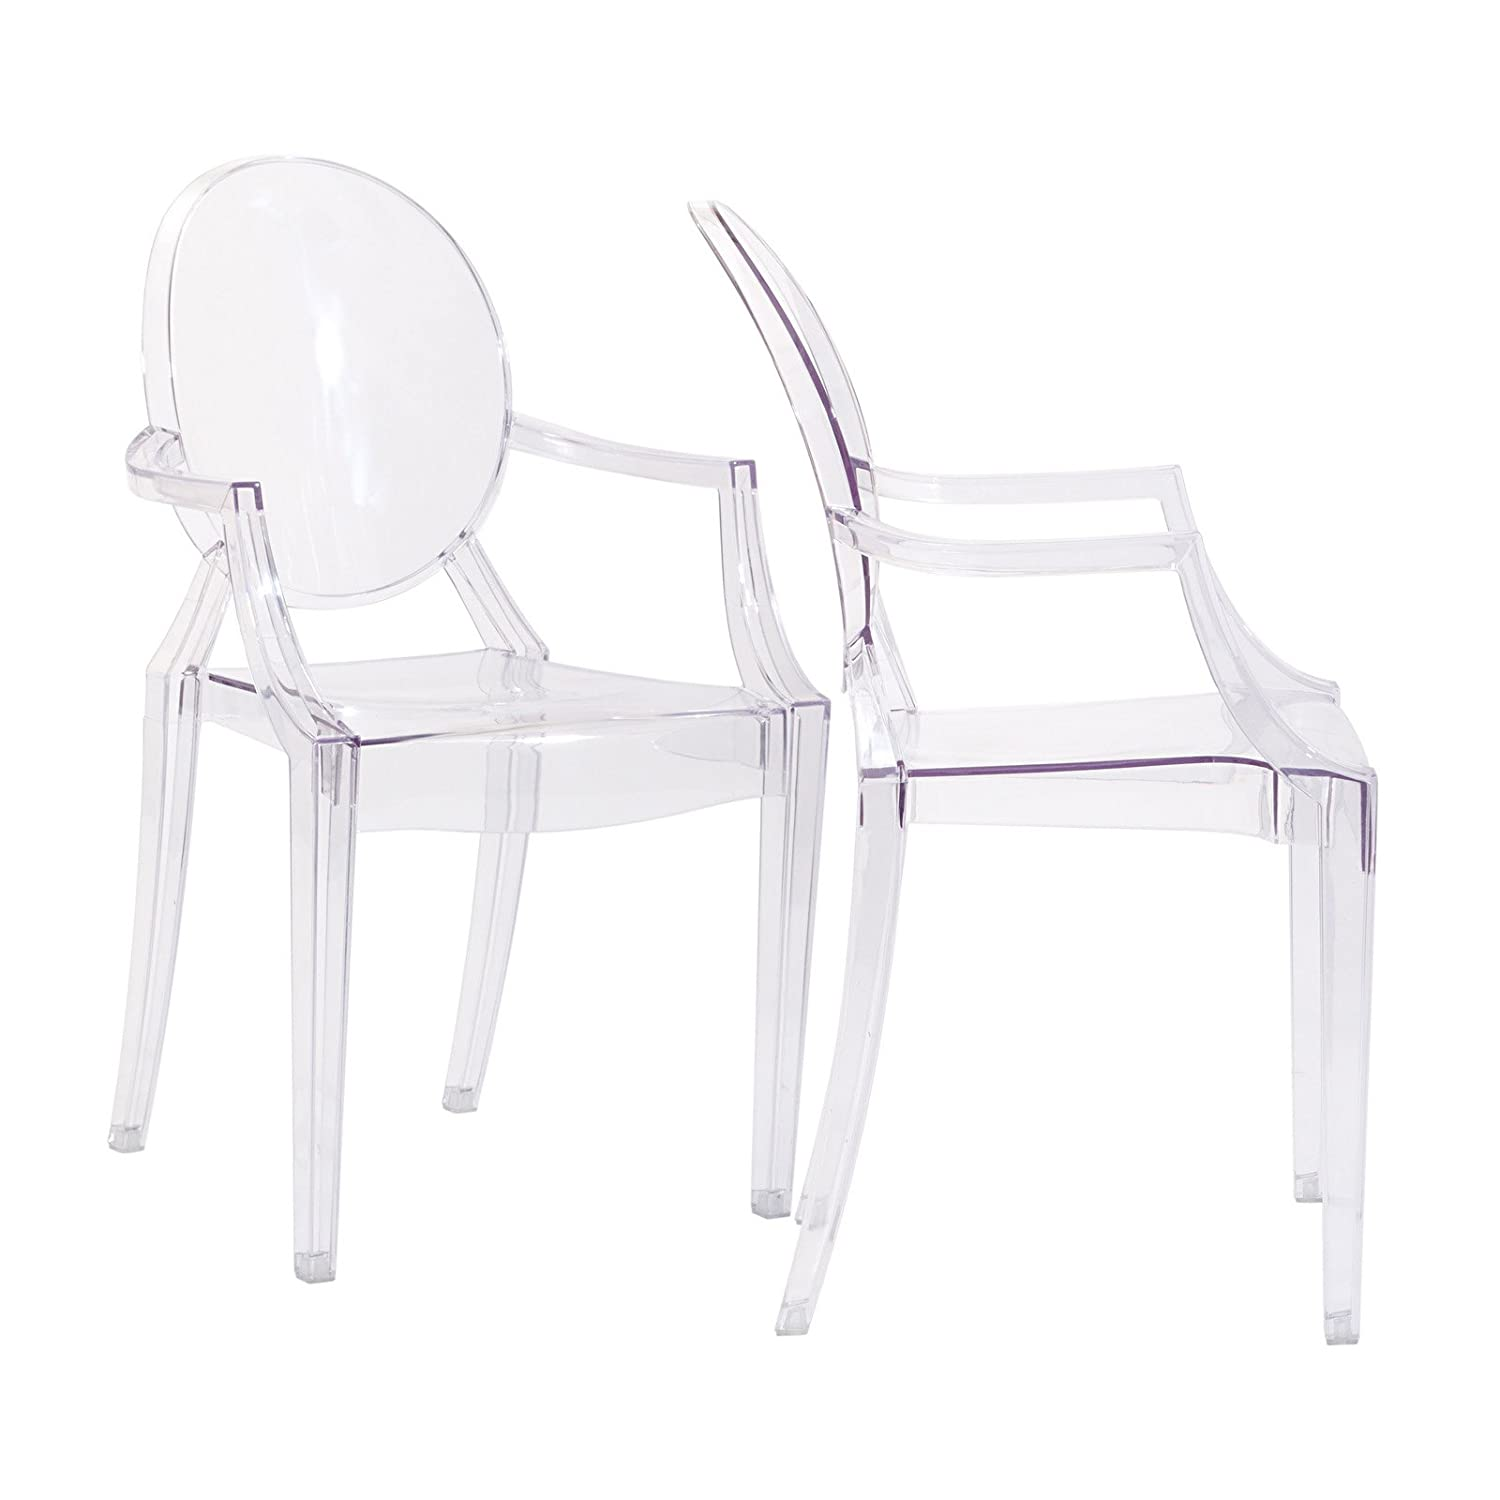 Amazing Amazon.com: Modway Miniature Casper Novelty Chair In Clear: Kitchen U0026 Dining